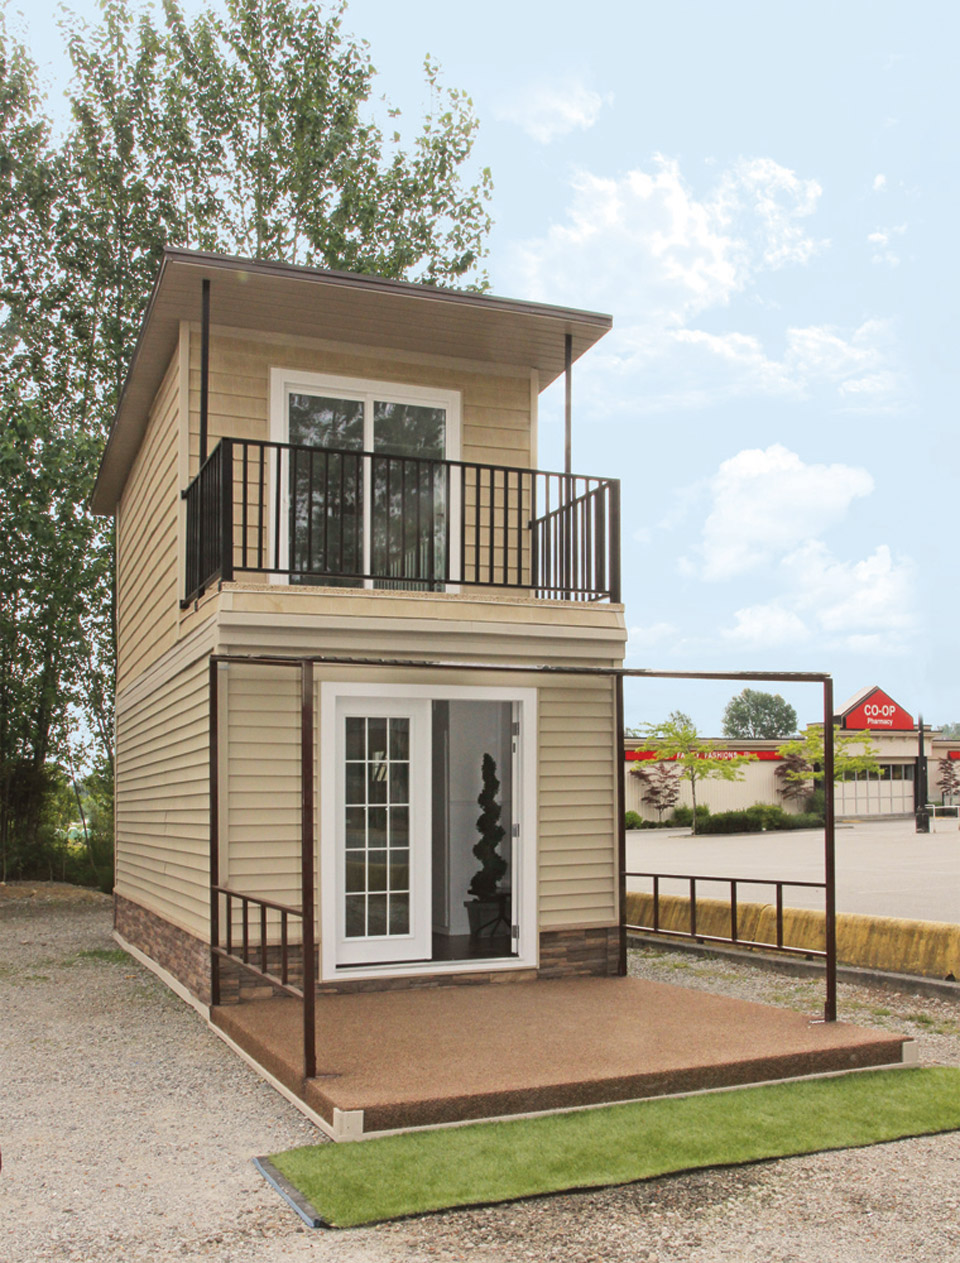 The eagle 1 a 350 sq ft 2 story steel framed micro home for 2 level house